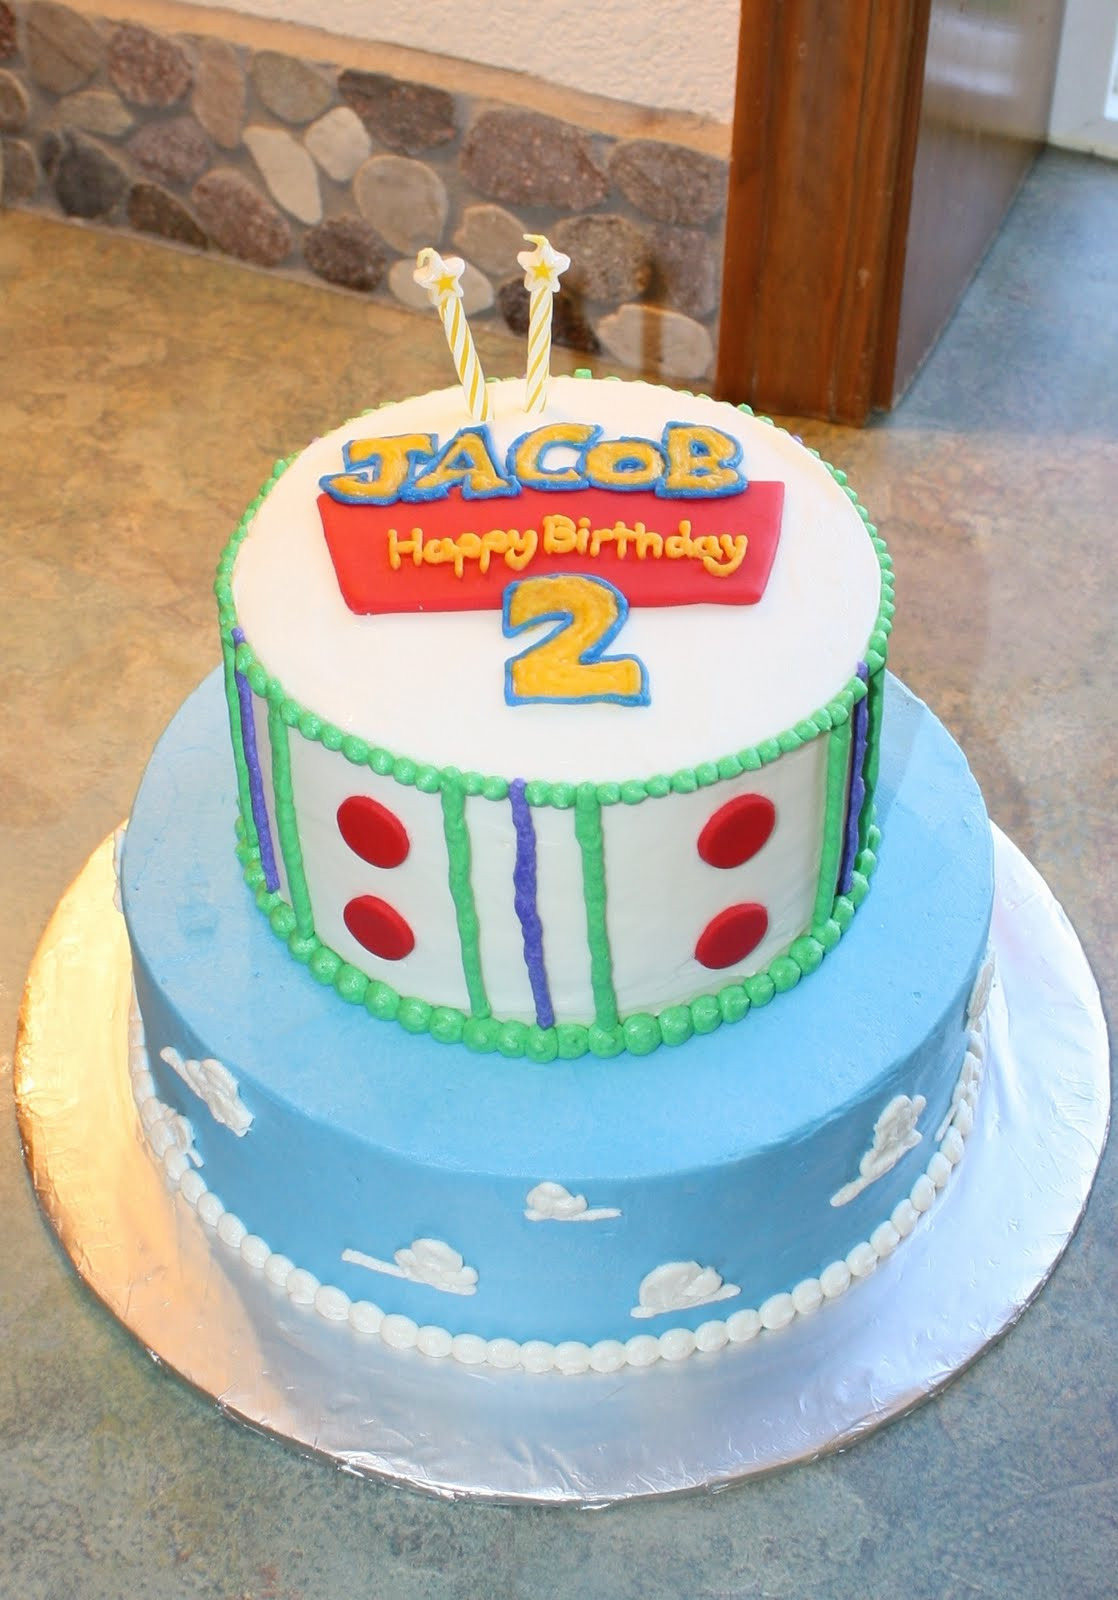 Party Cakes Toy Story Cake for Jacob